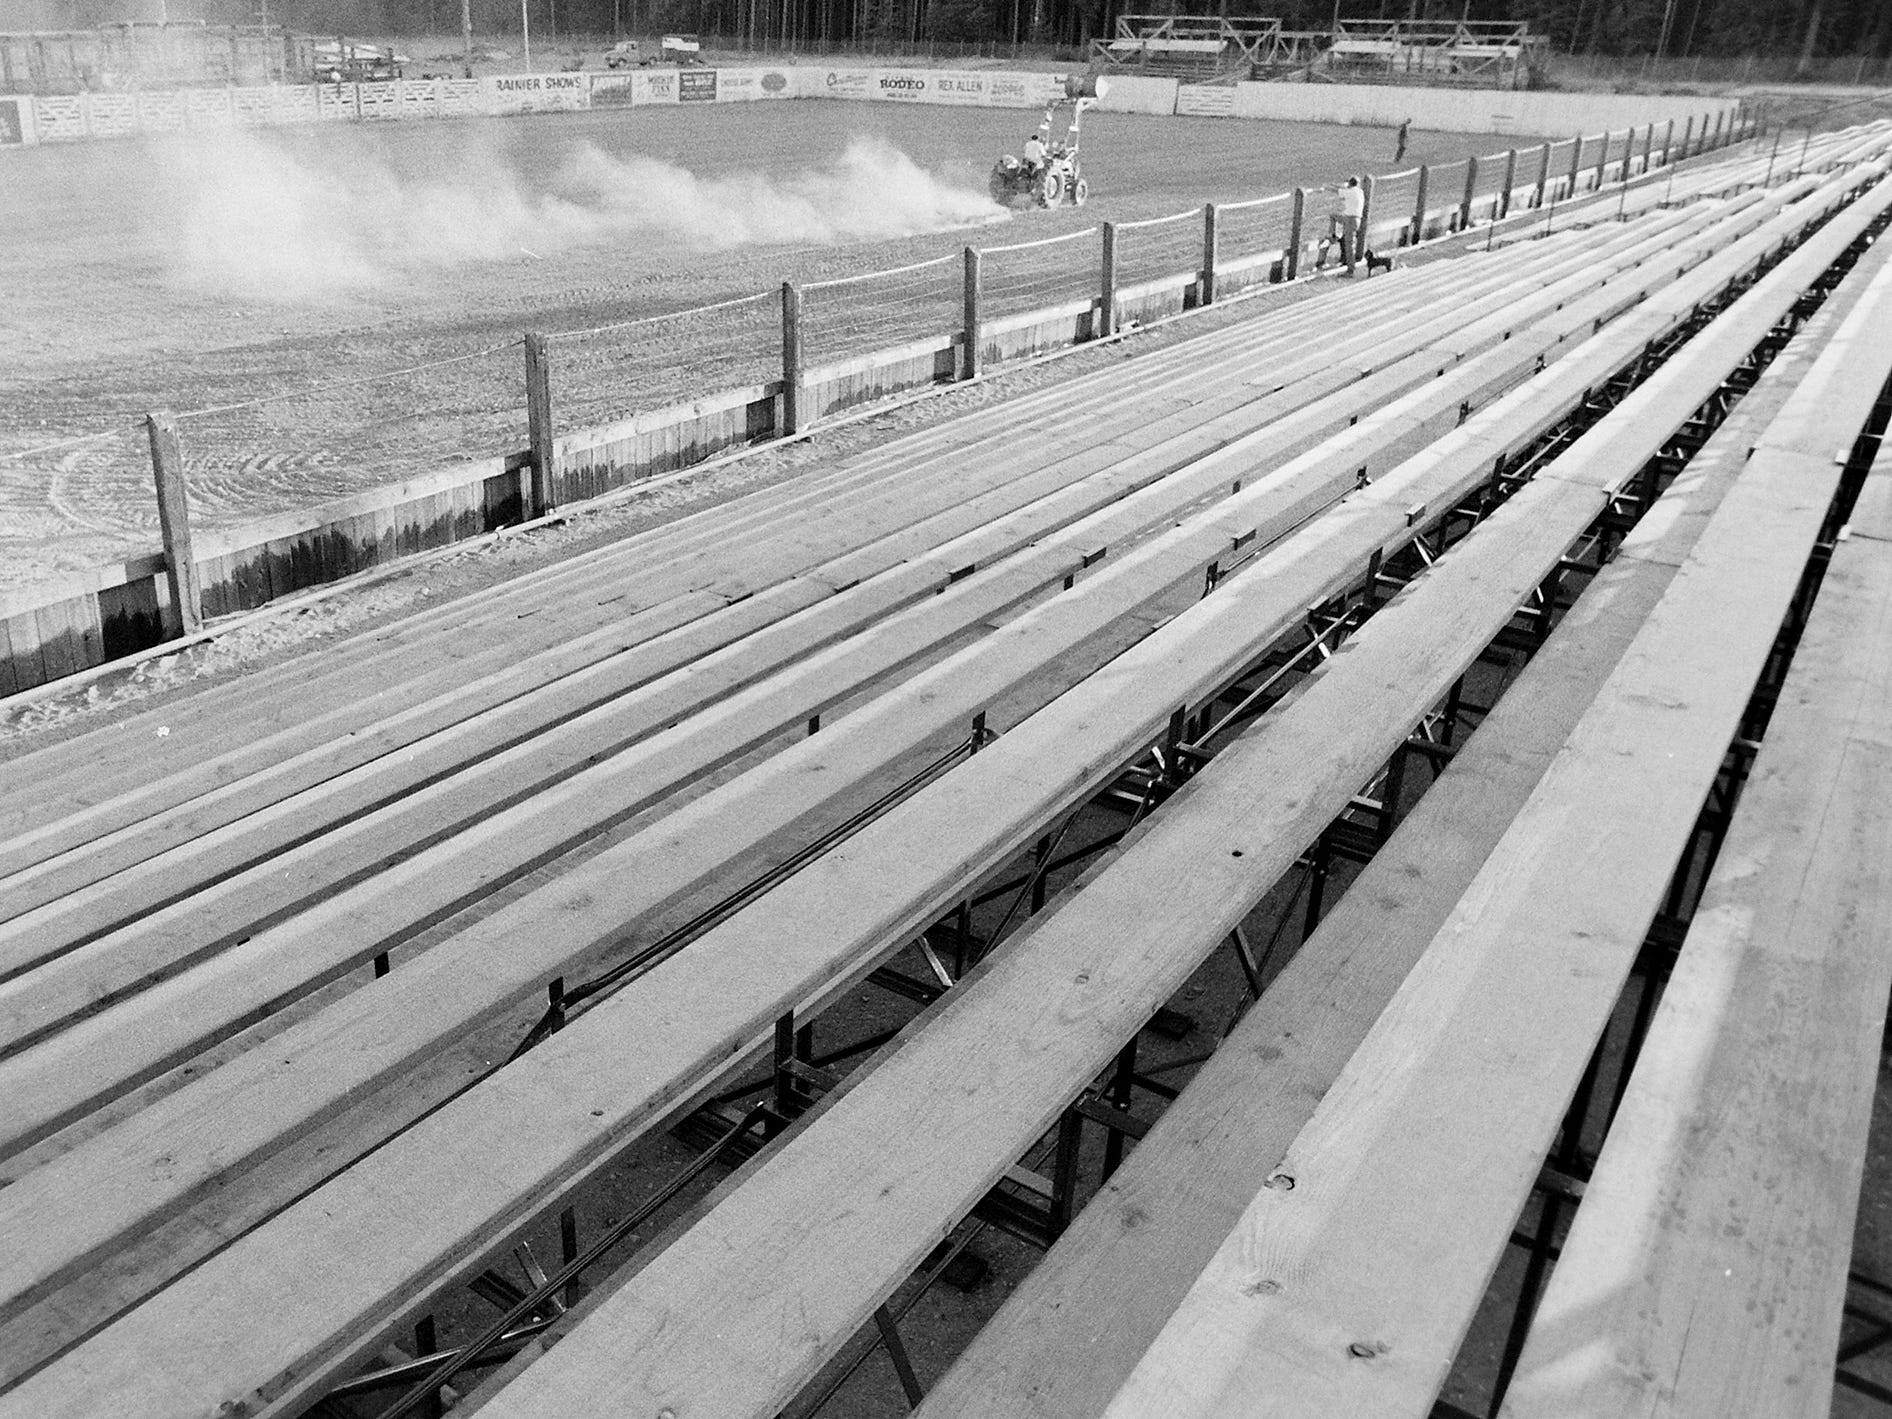 06/19/70